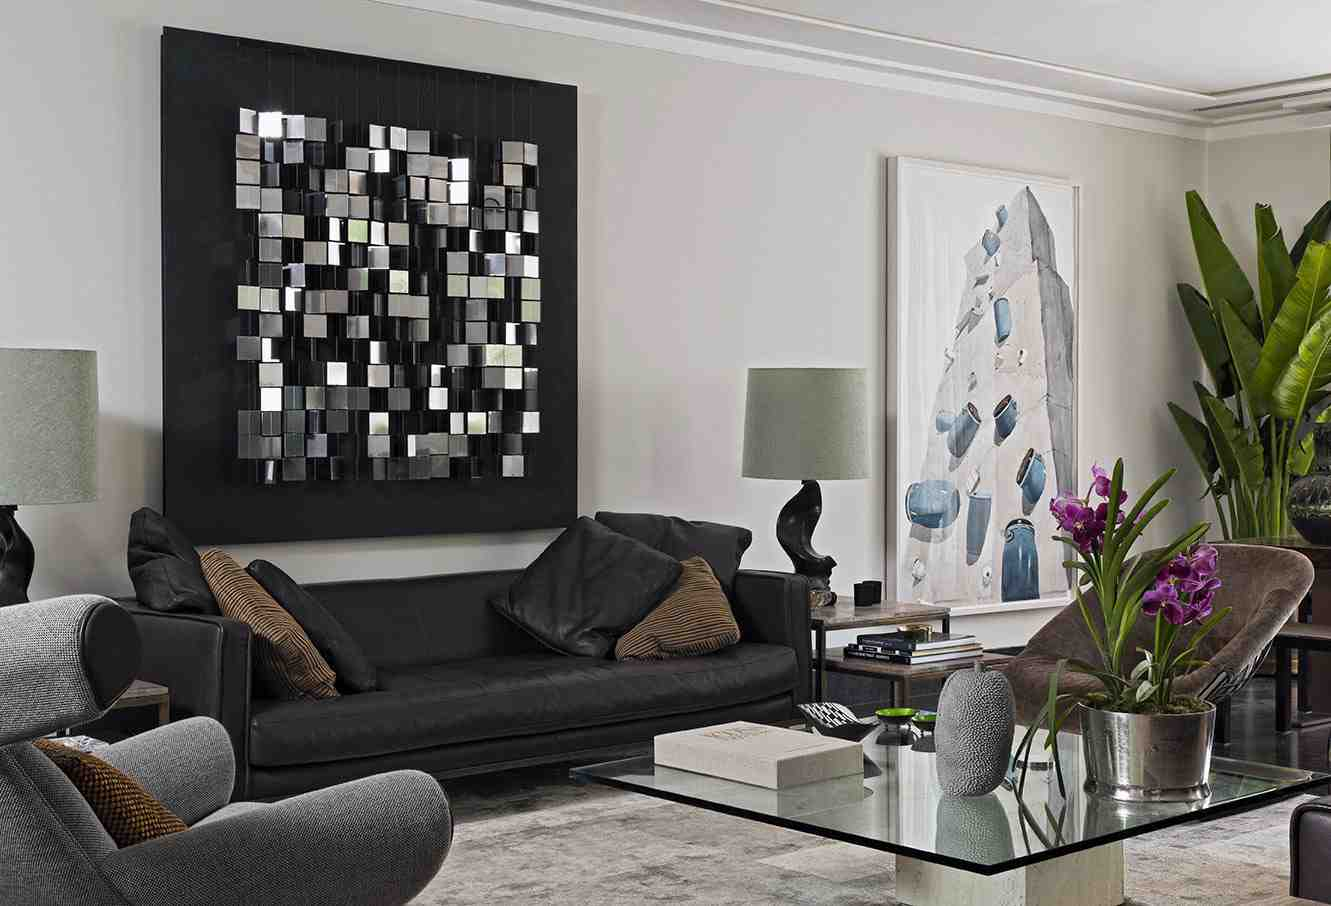 Living room wall decor 5 options decor ideasdecor ideas Room interior decoration ideas